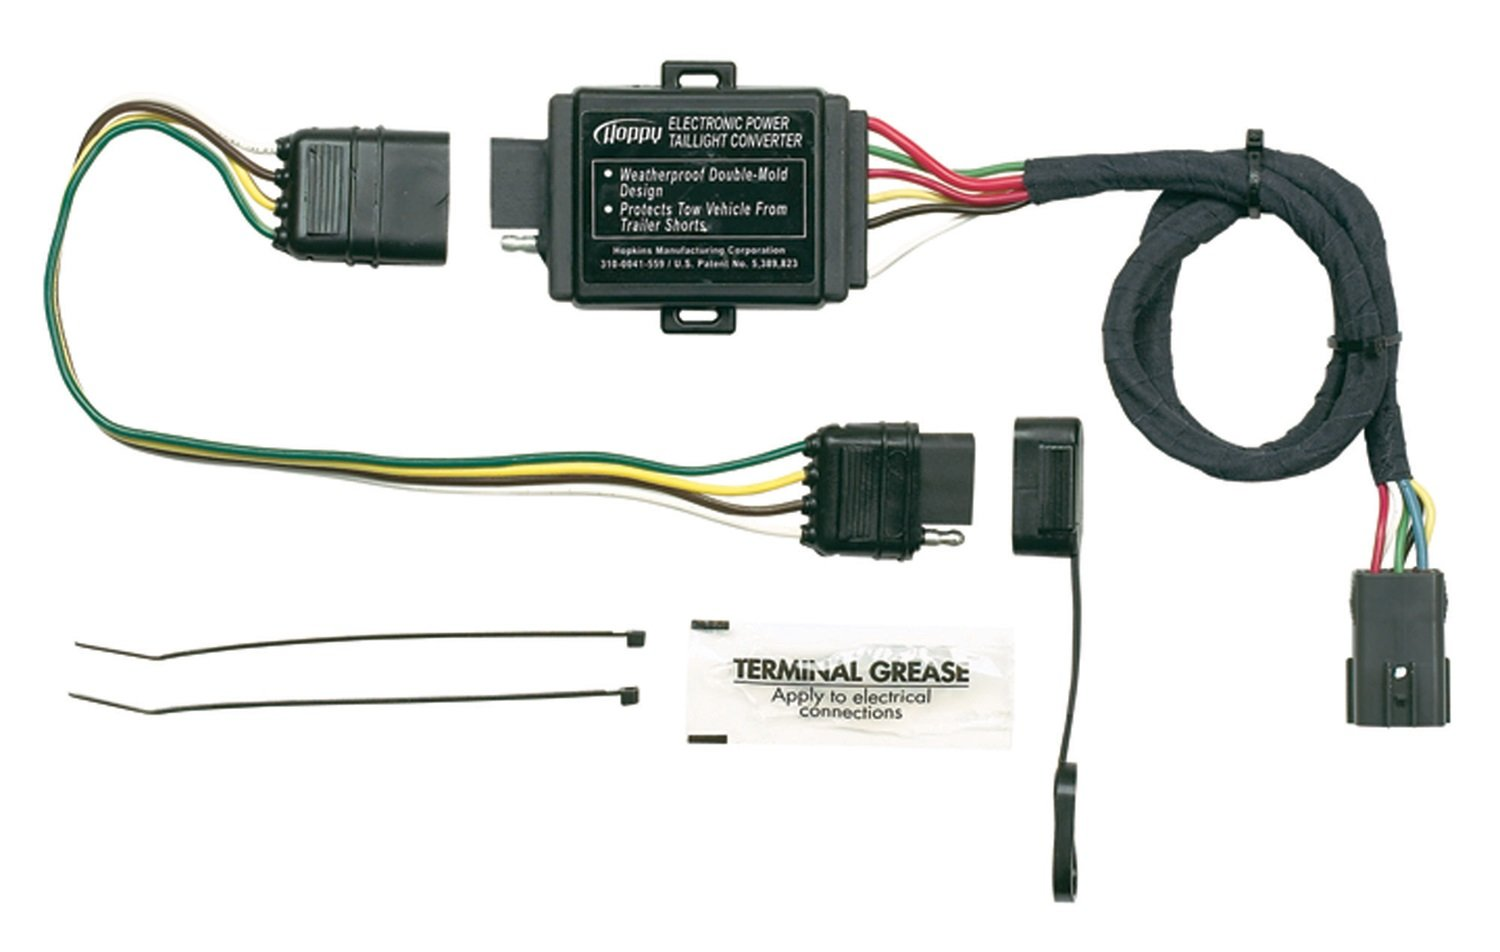 61dKvjPegbL._SL1500_ amazon com hopkins 11143875 plug in simple vehicle to trailer universal trailer wiring harness at webbmarketing.co